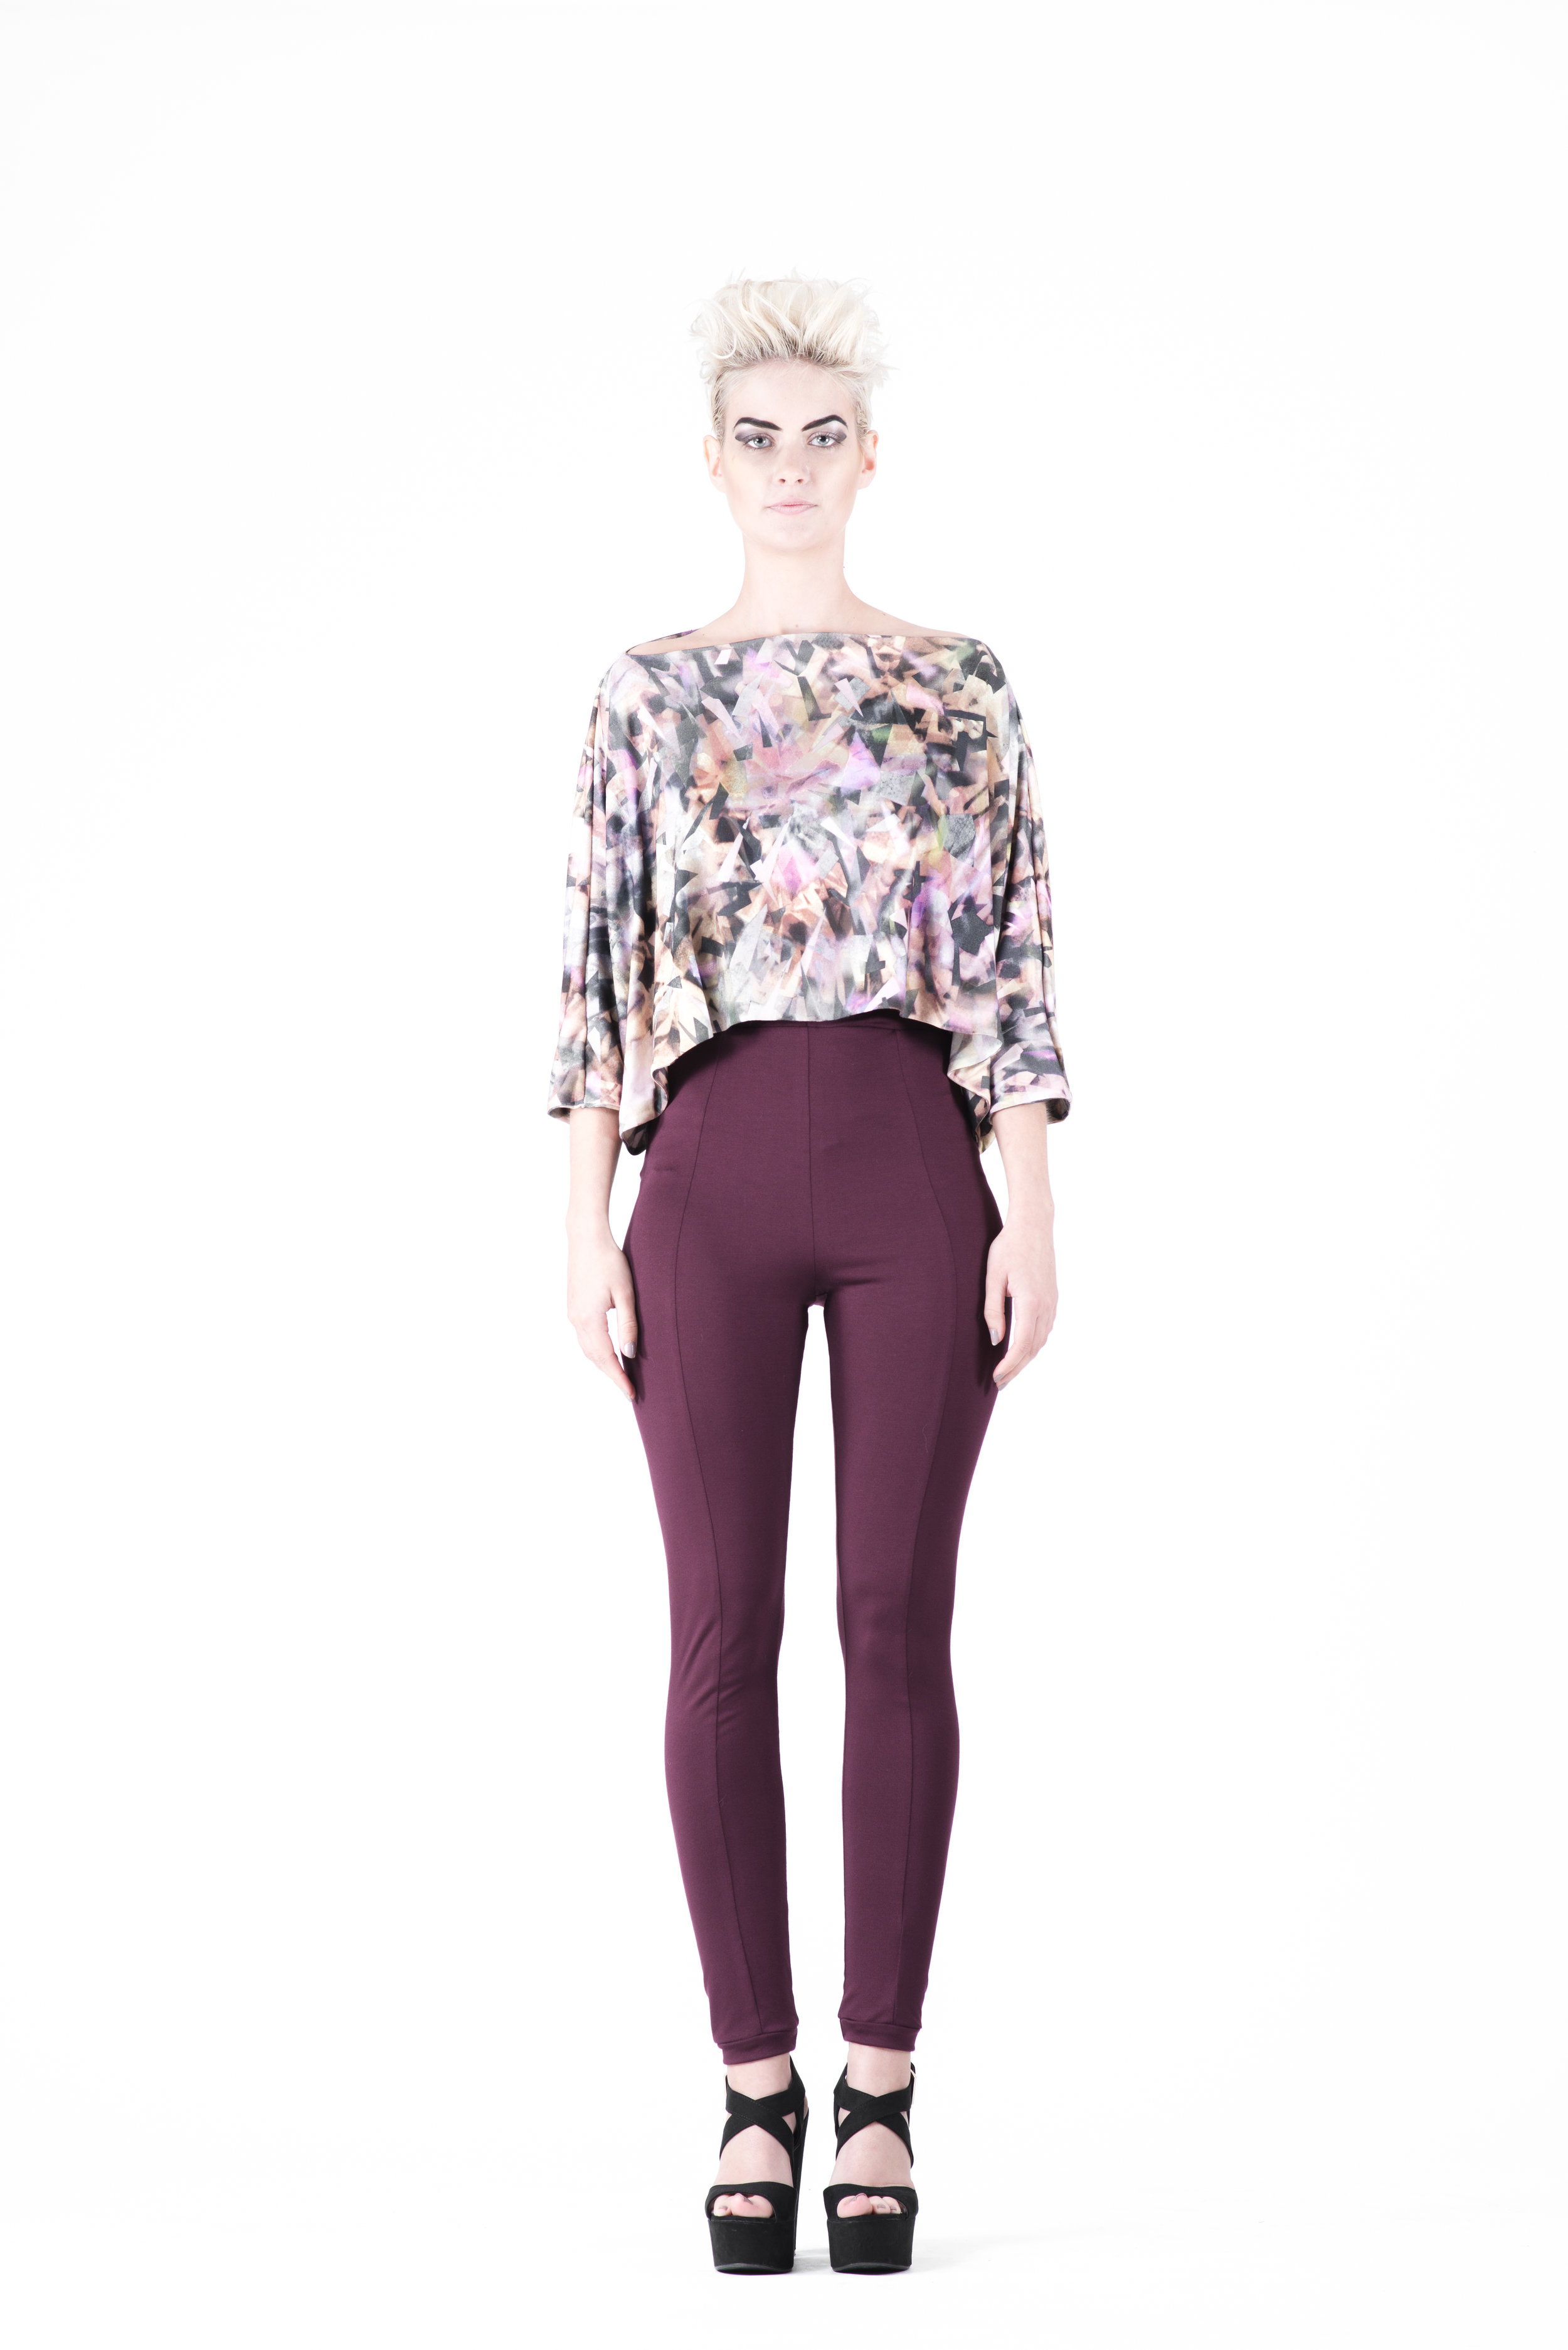 zaramia-ava-zaramiaava-leeds-fashion-designer-ethical-sustainable-tailored-minimalist-mika-print-crop-top-versatile-rei-plum-legginges-drape-cowl-styling-womenswear-models-photoshoot-57